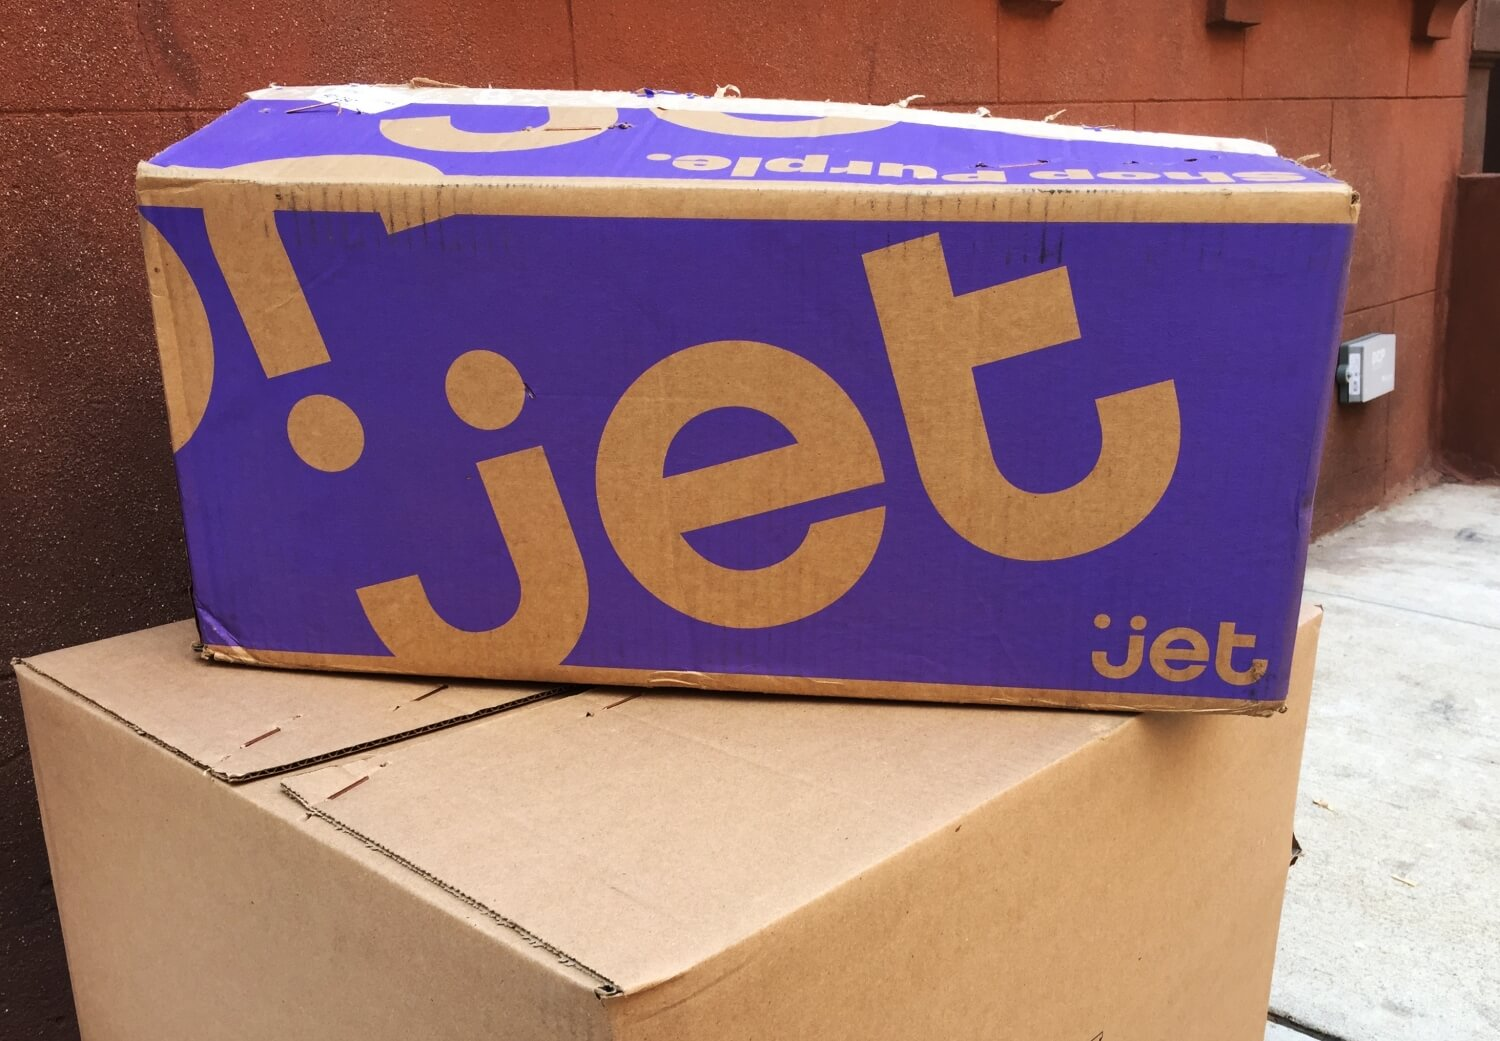 Walmart is discontinuing e-commerce subsidiary Jet.com